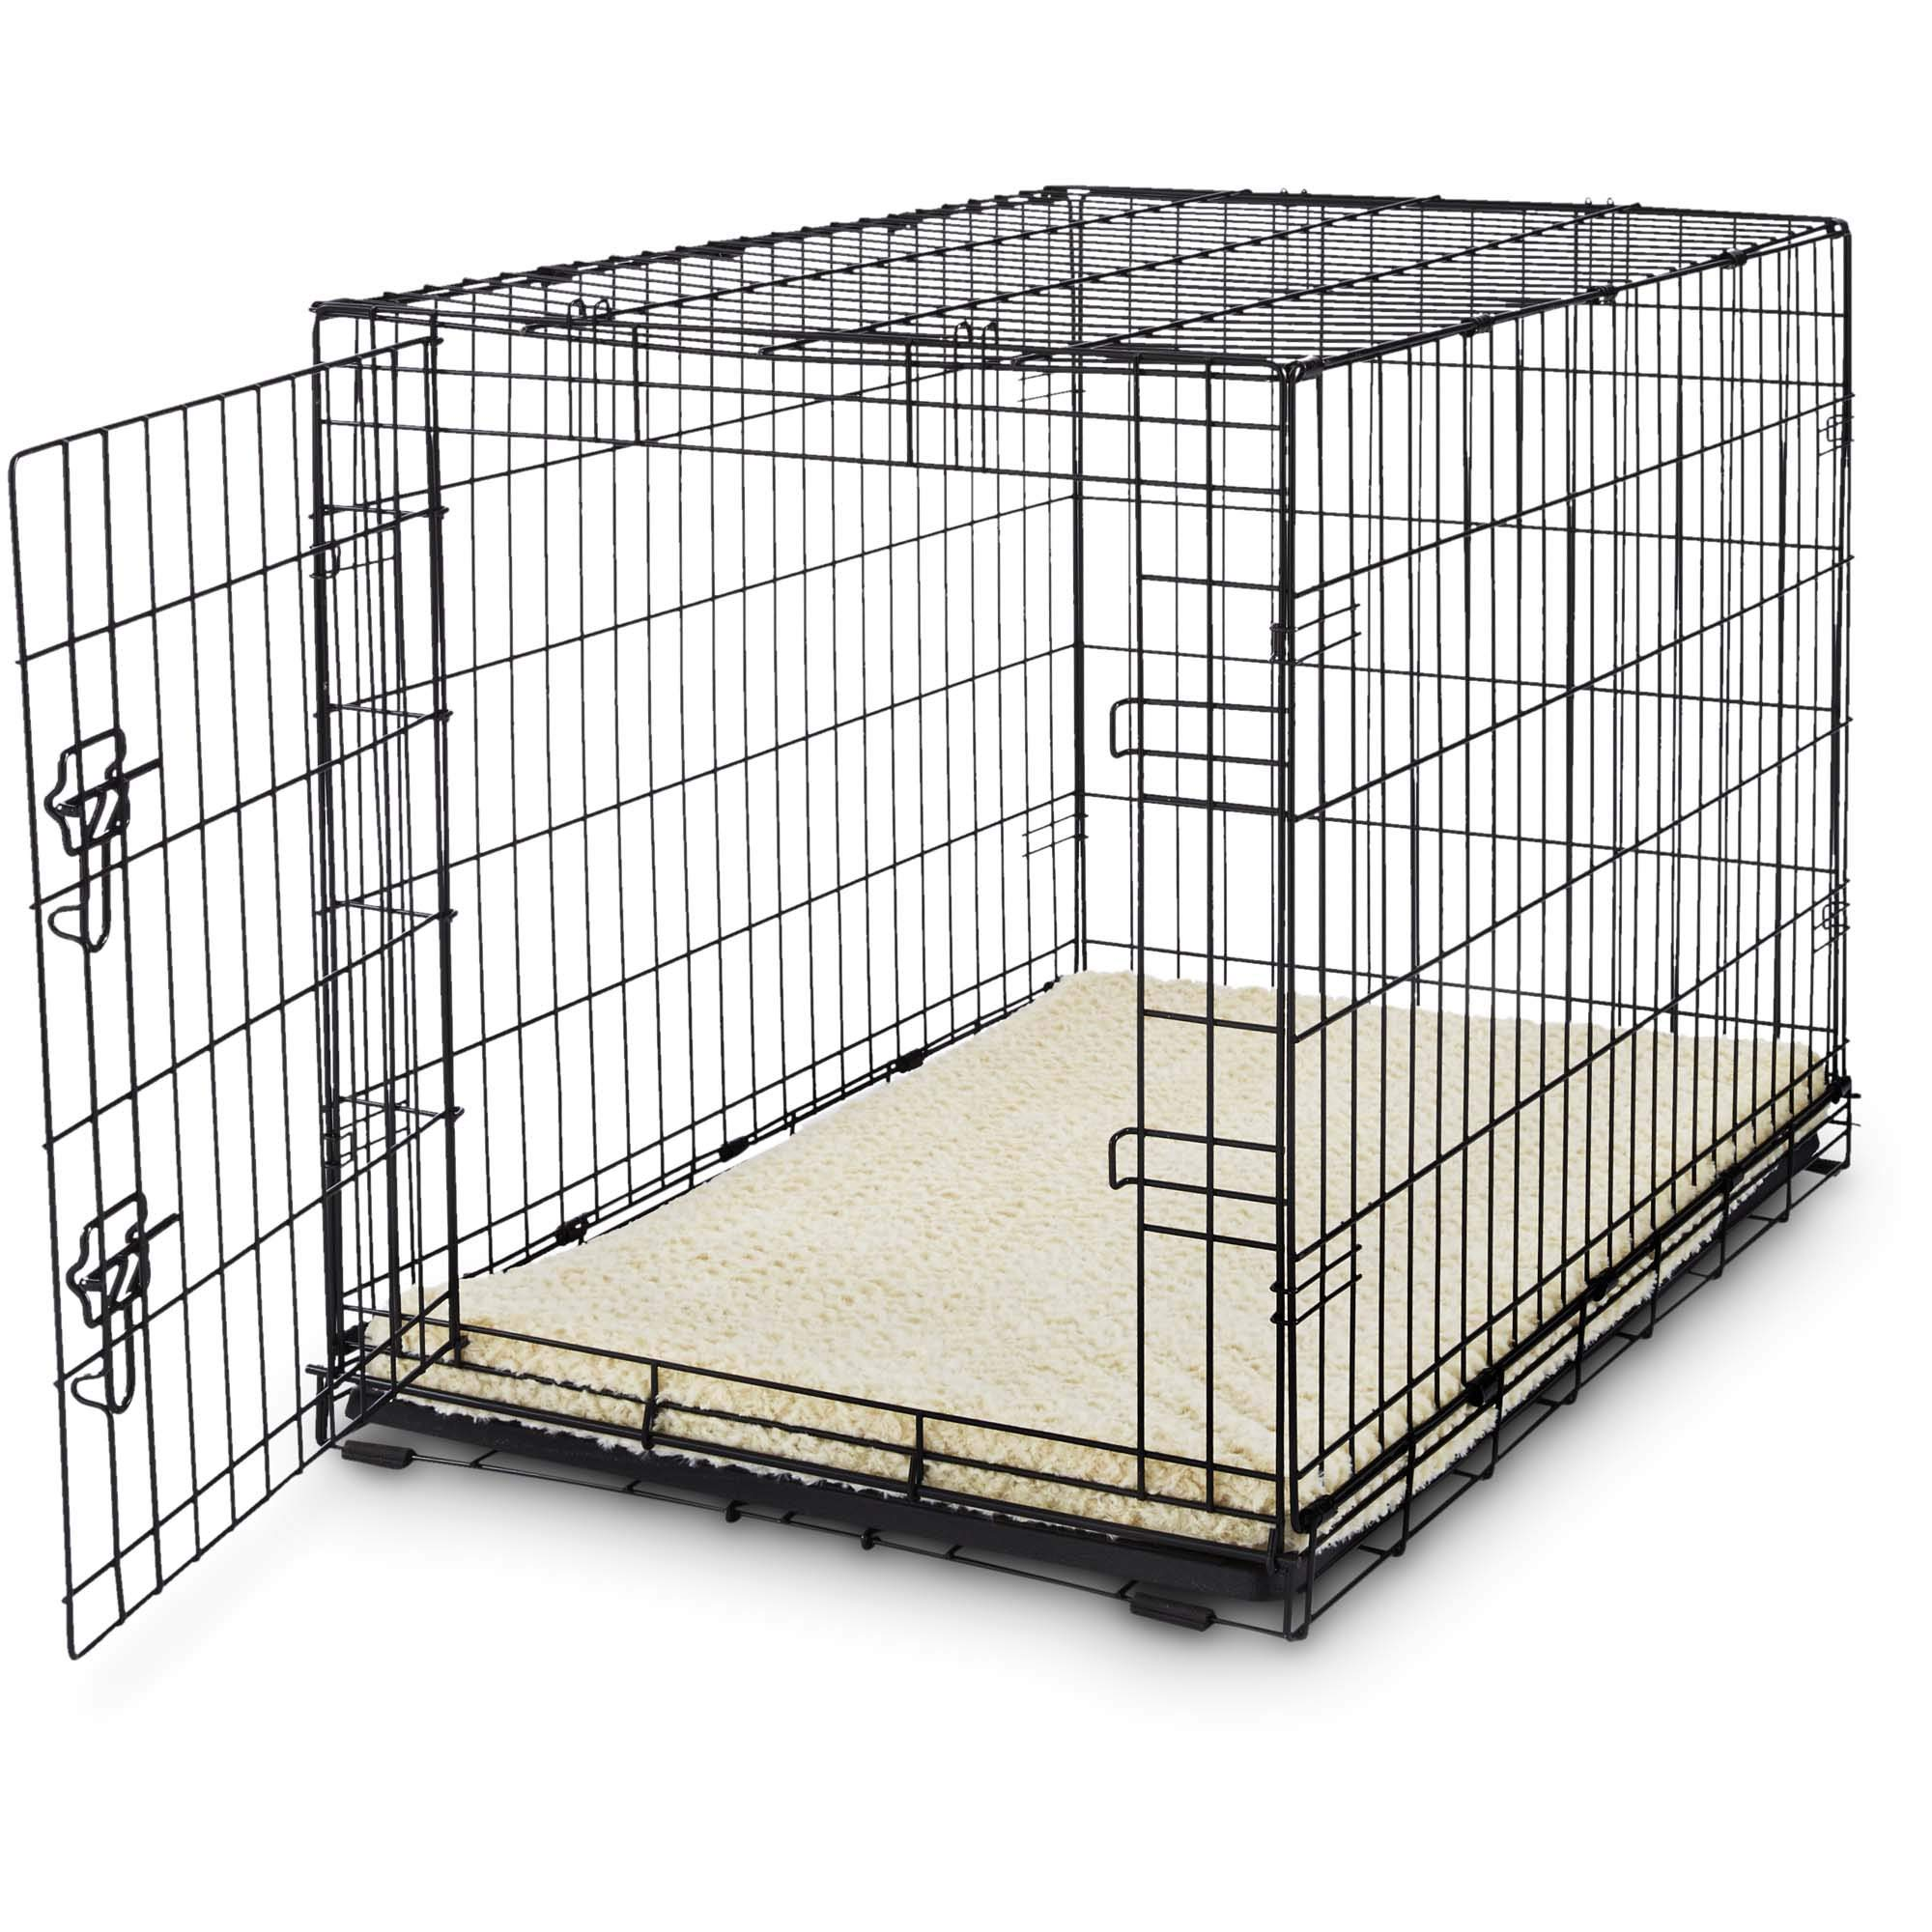 Petco Classic 1-Door Dog Crate, 48'' L x 30'' W X 32'' H, XX-Large, Black by Petco